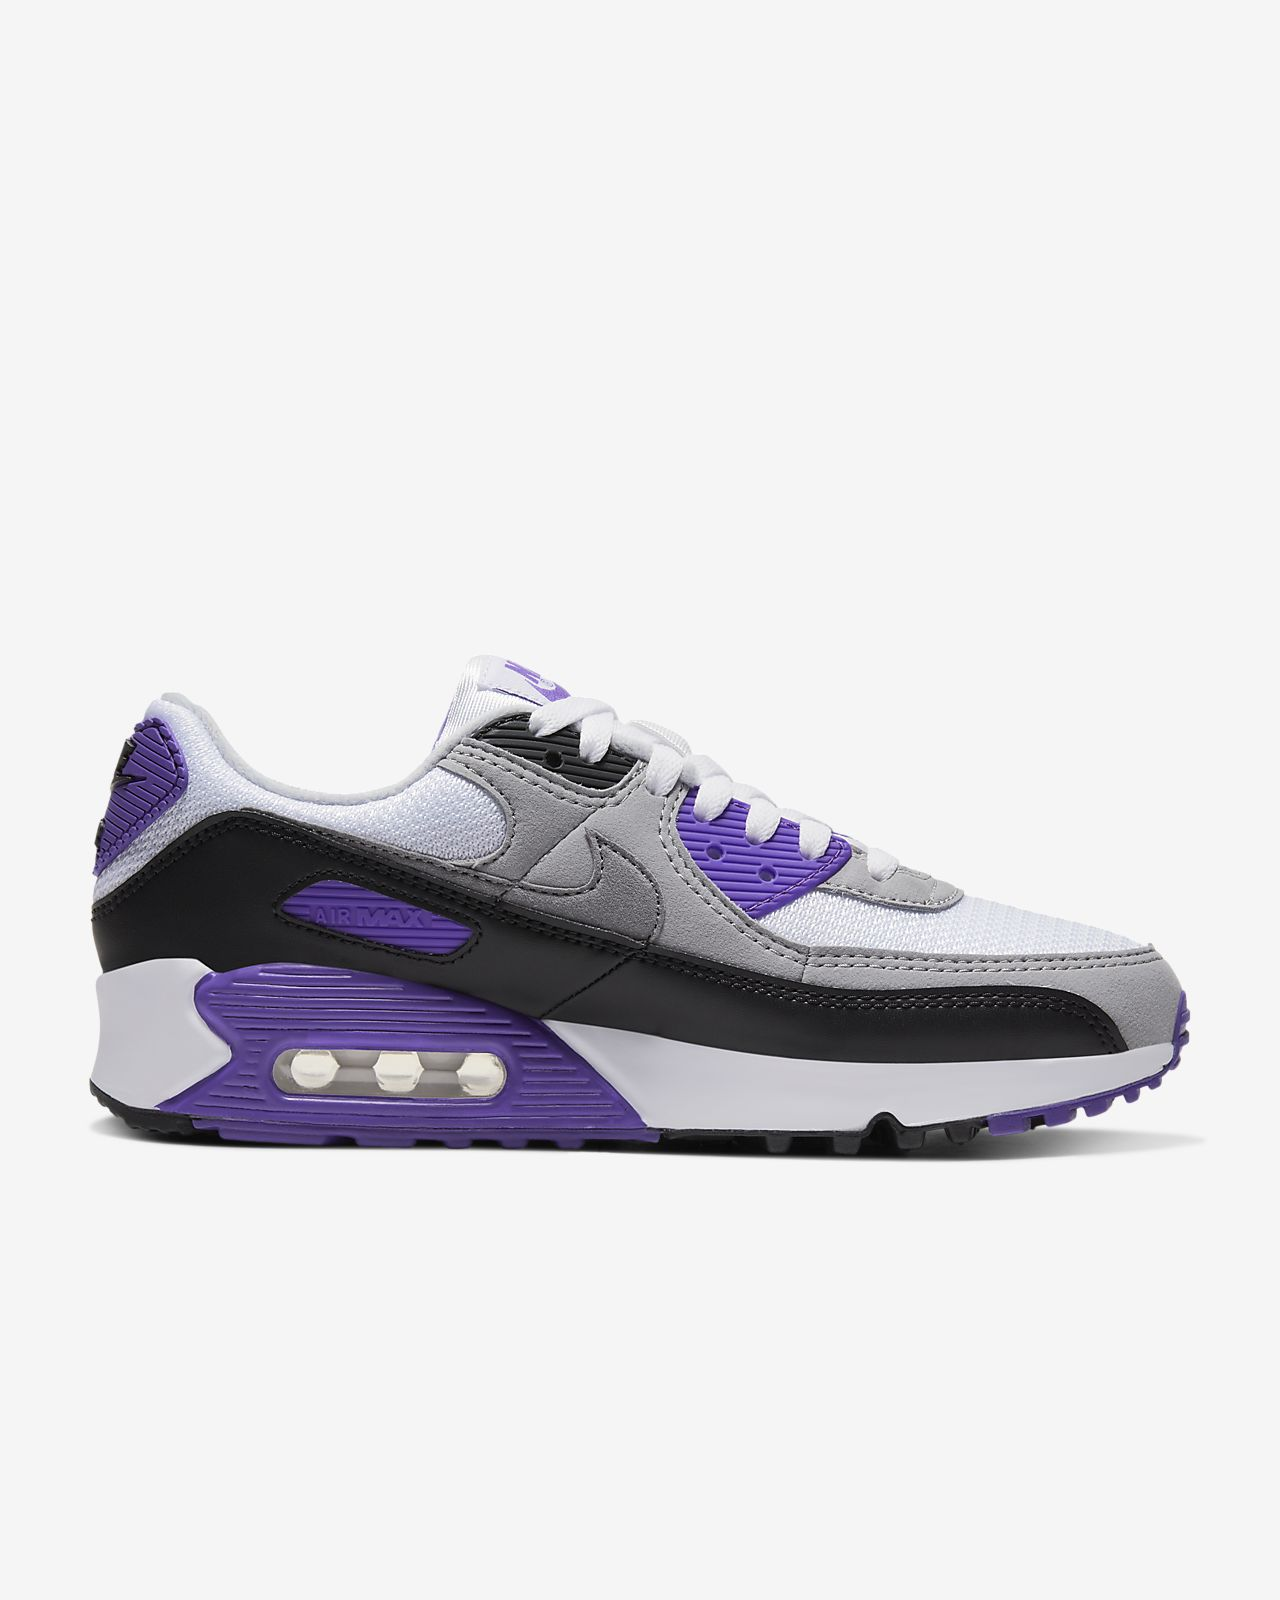 Details about Nike Wmns Air Max 90 OG 2020 Volt White Grey Black Women Casual Shoes CD0490 101